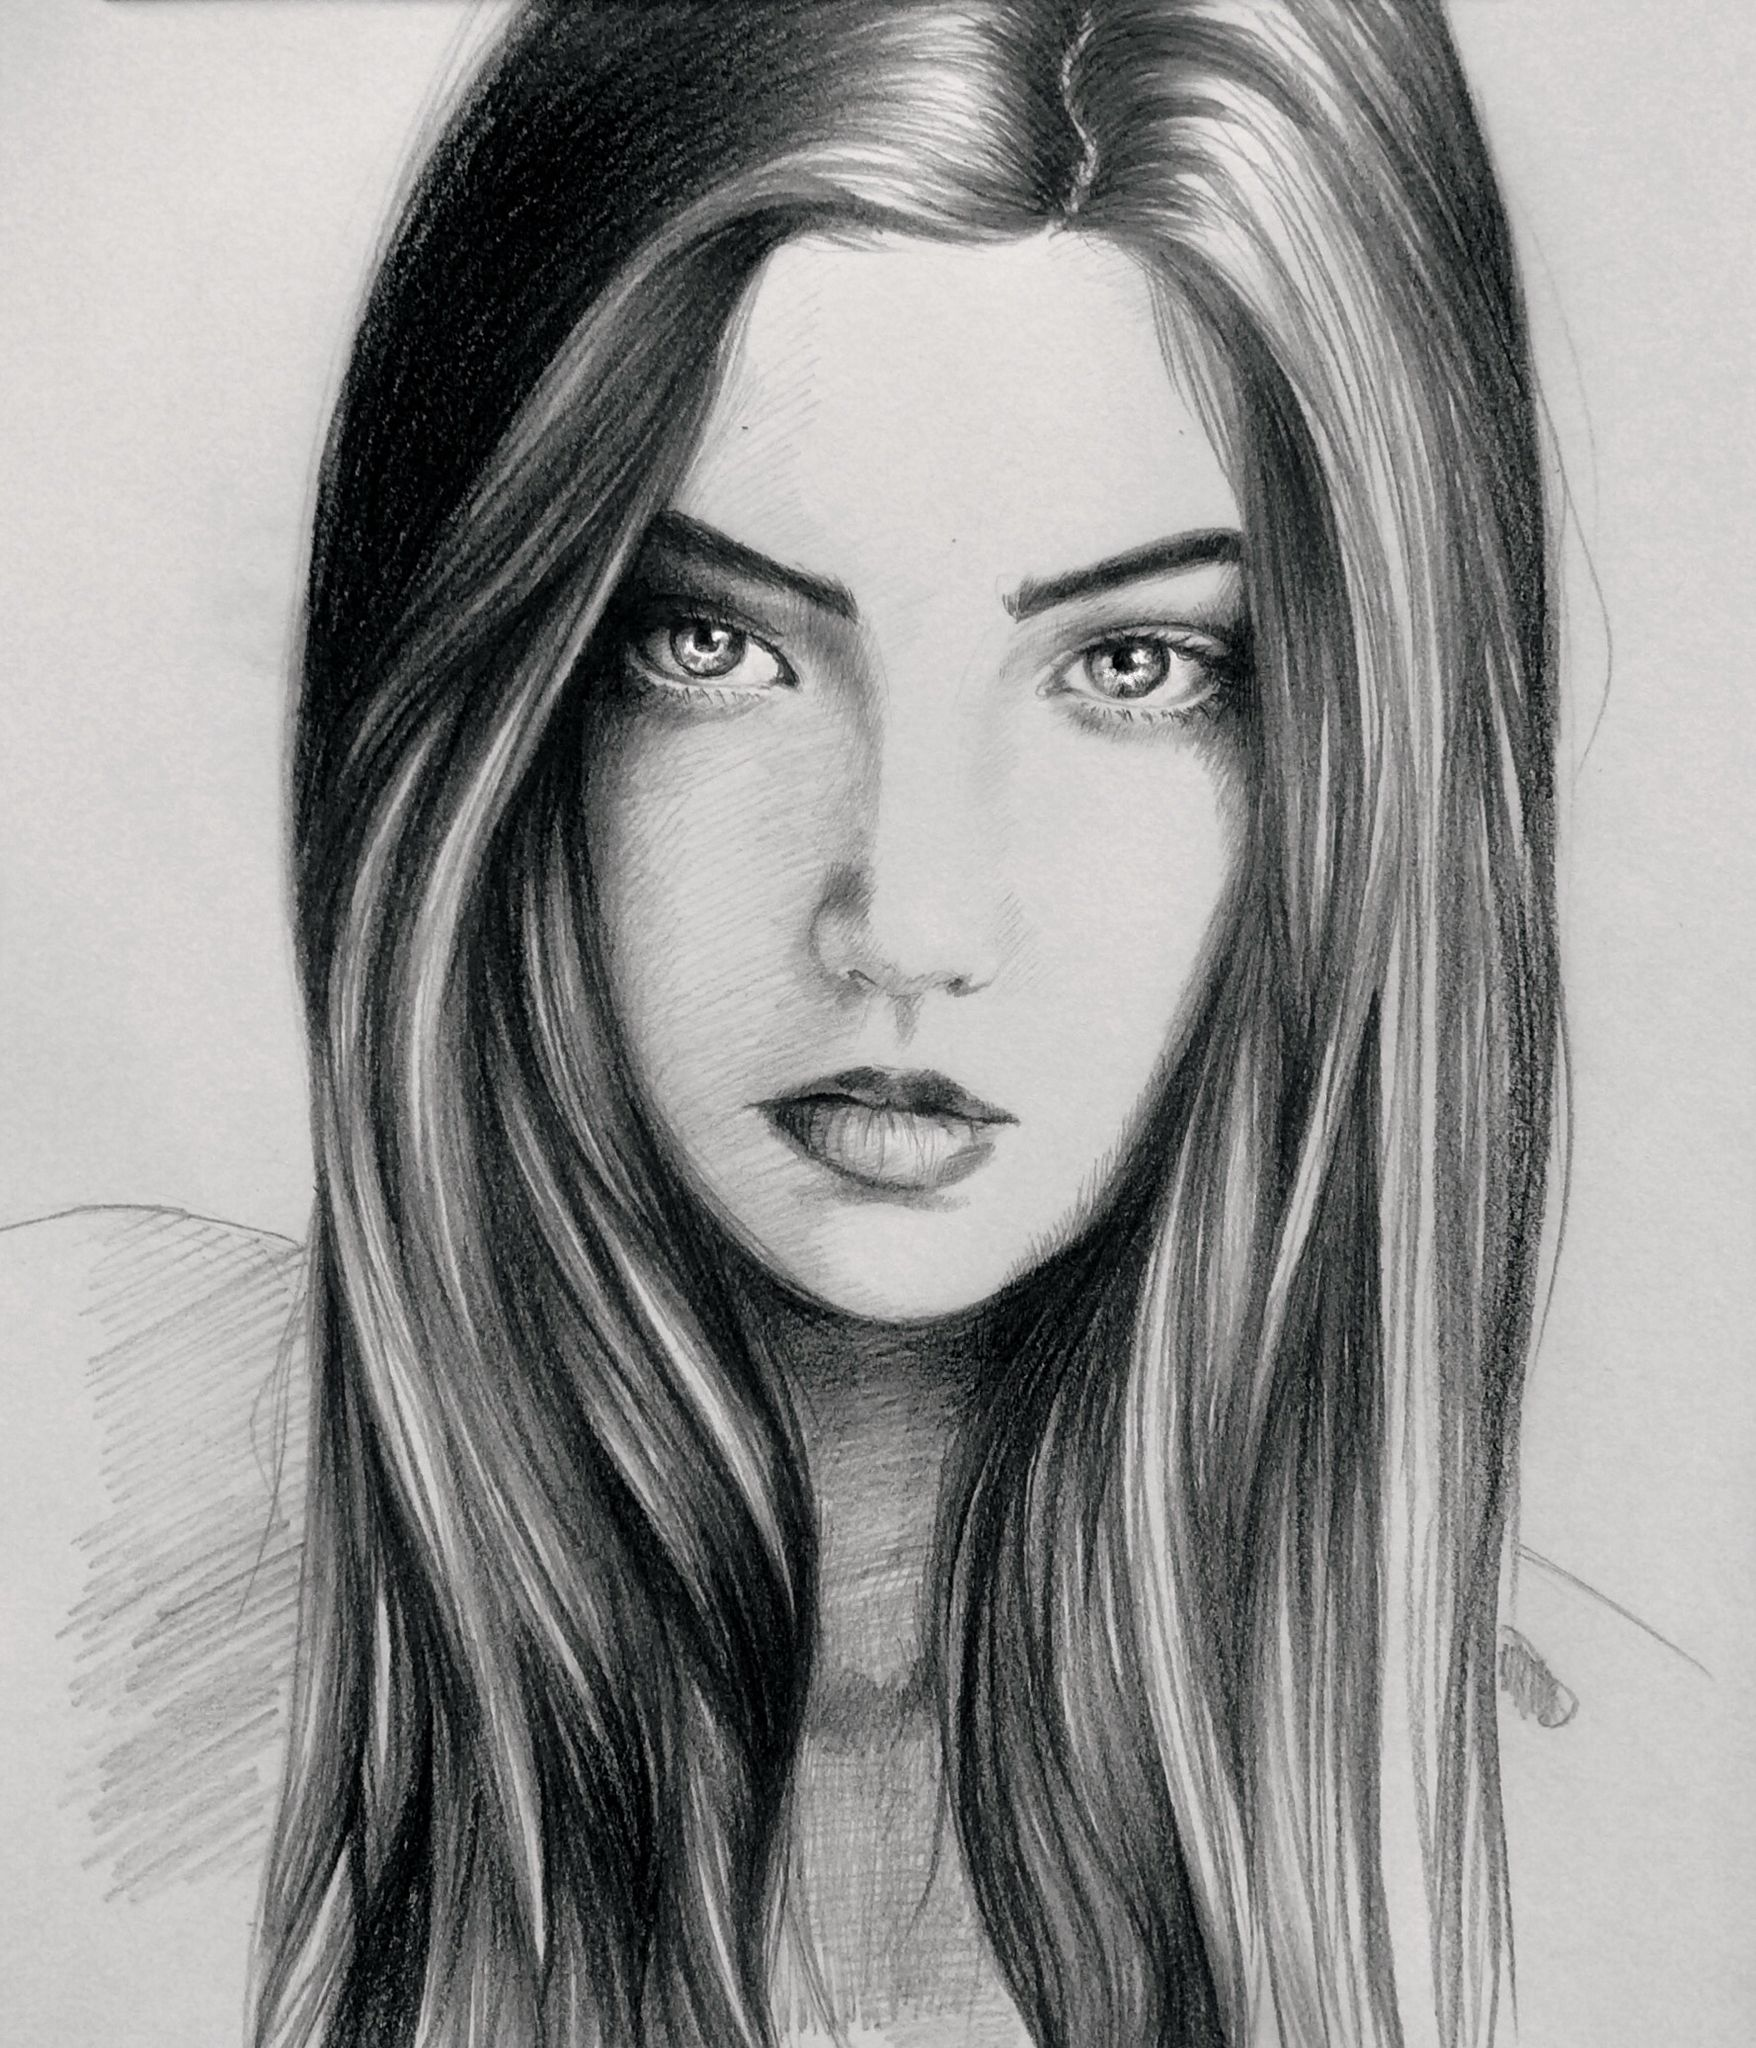 portrait sketch of beautiful